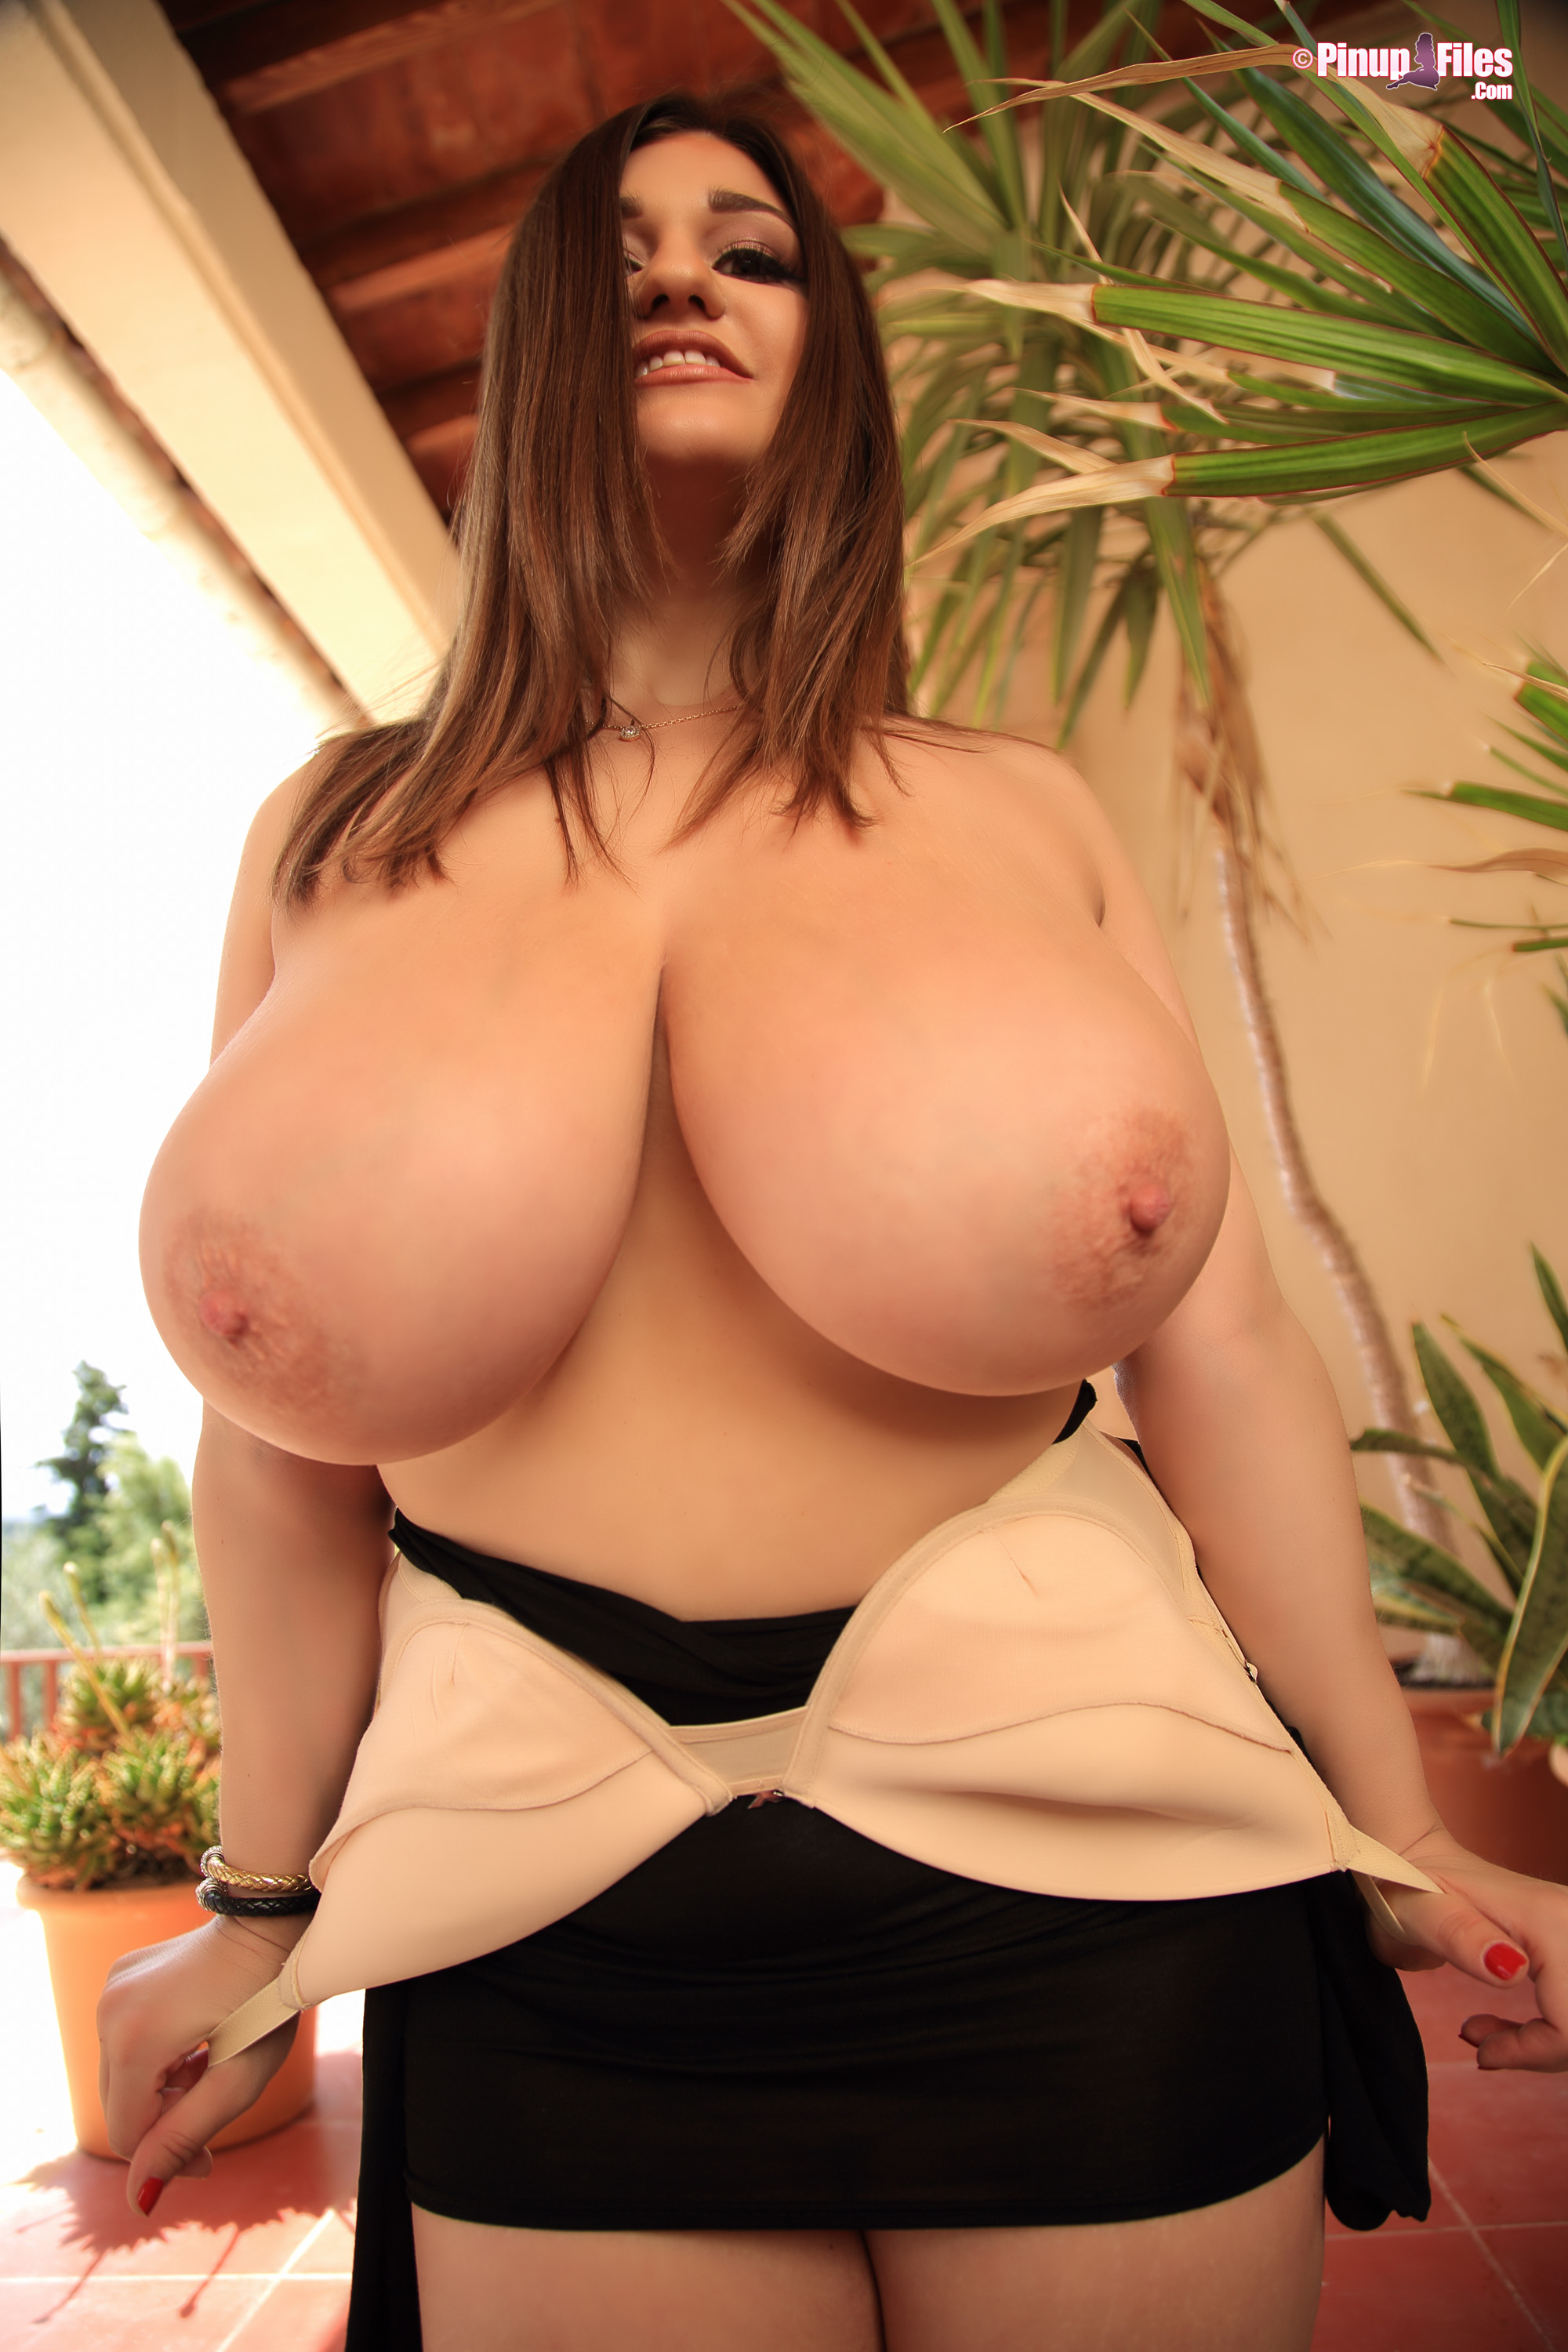 Amazing frau showing divine shapes with inspired titties